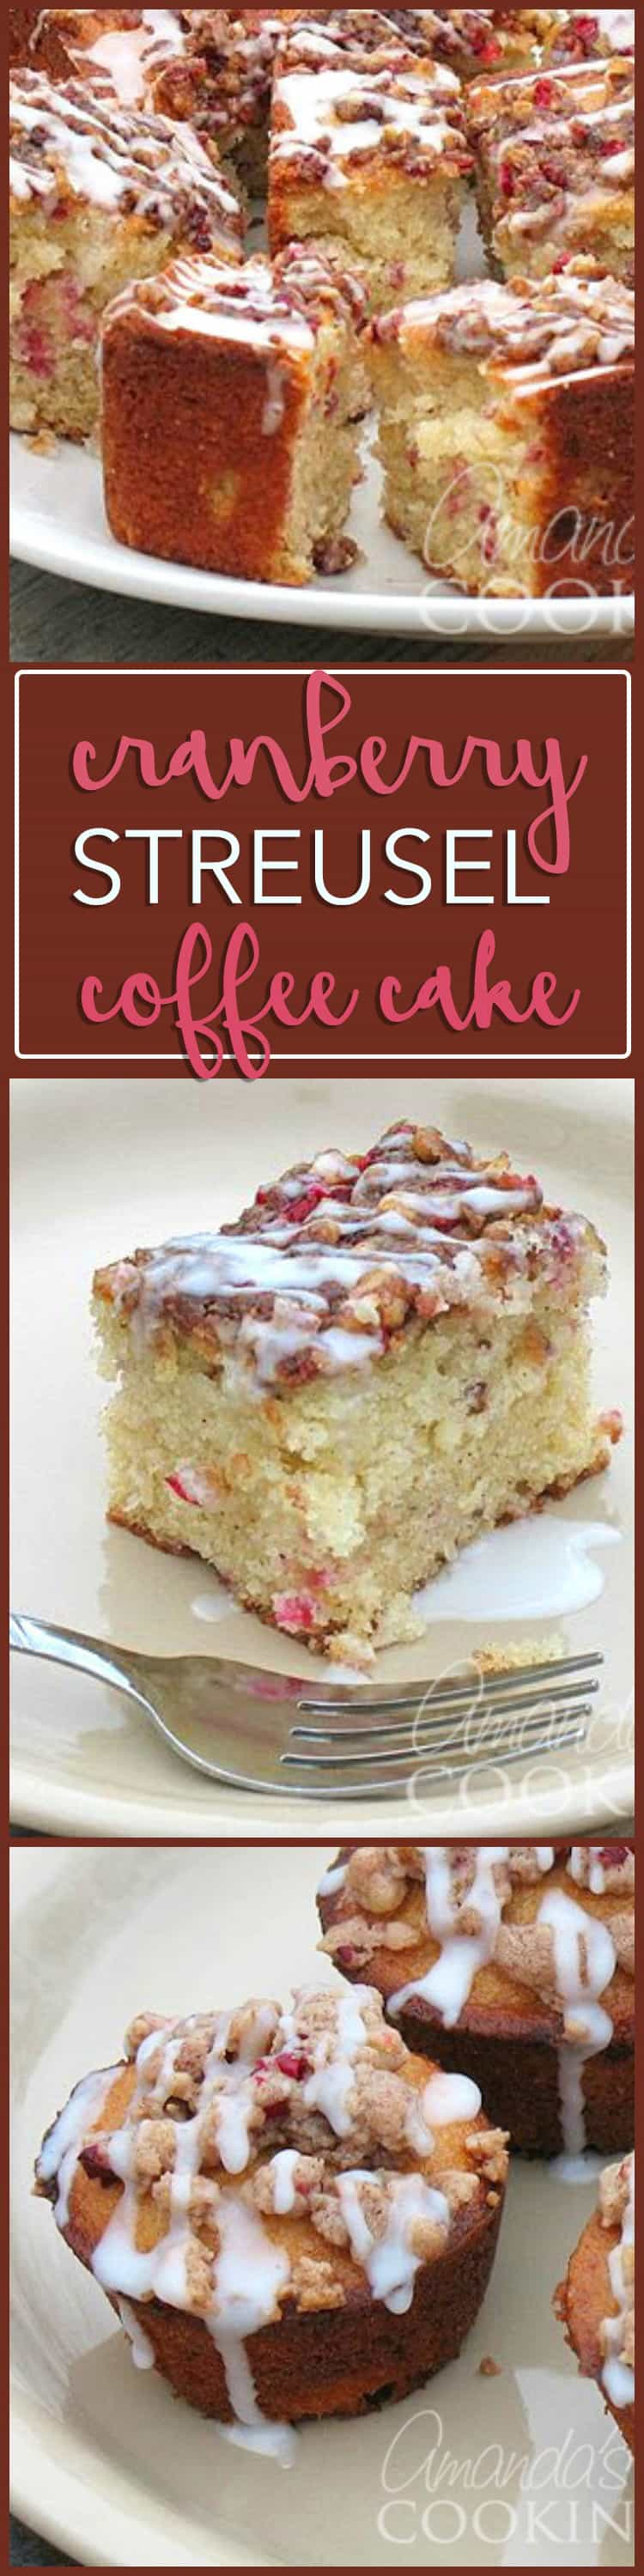 Use up those cranberries leftover from Thanksgiving by making this moist and delicious cranberry streusel coffee cake, perfect for Christmas morning!